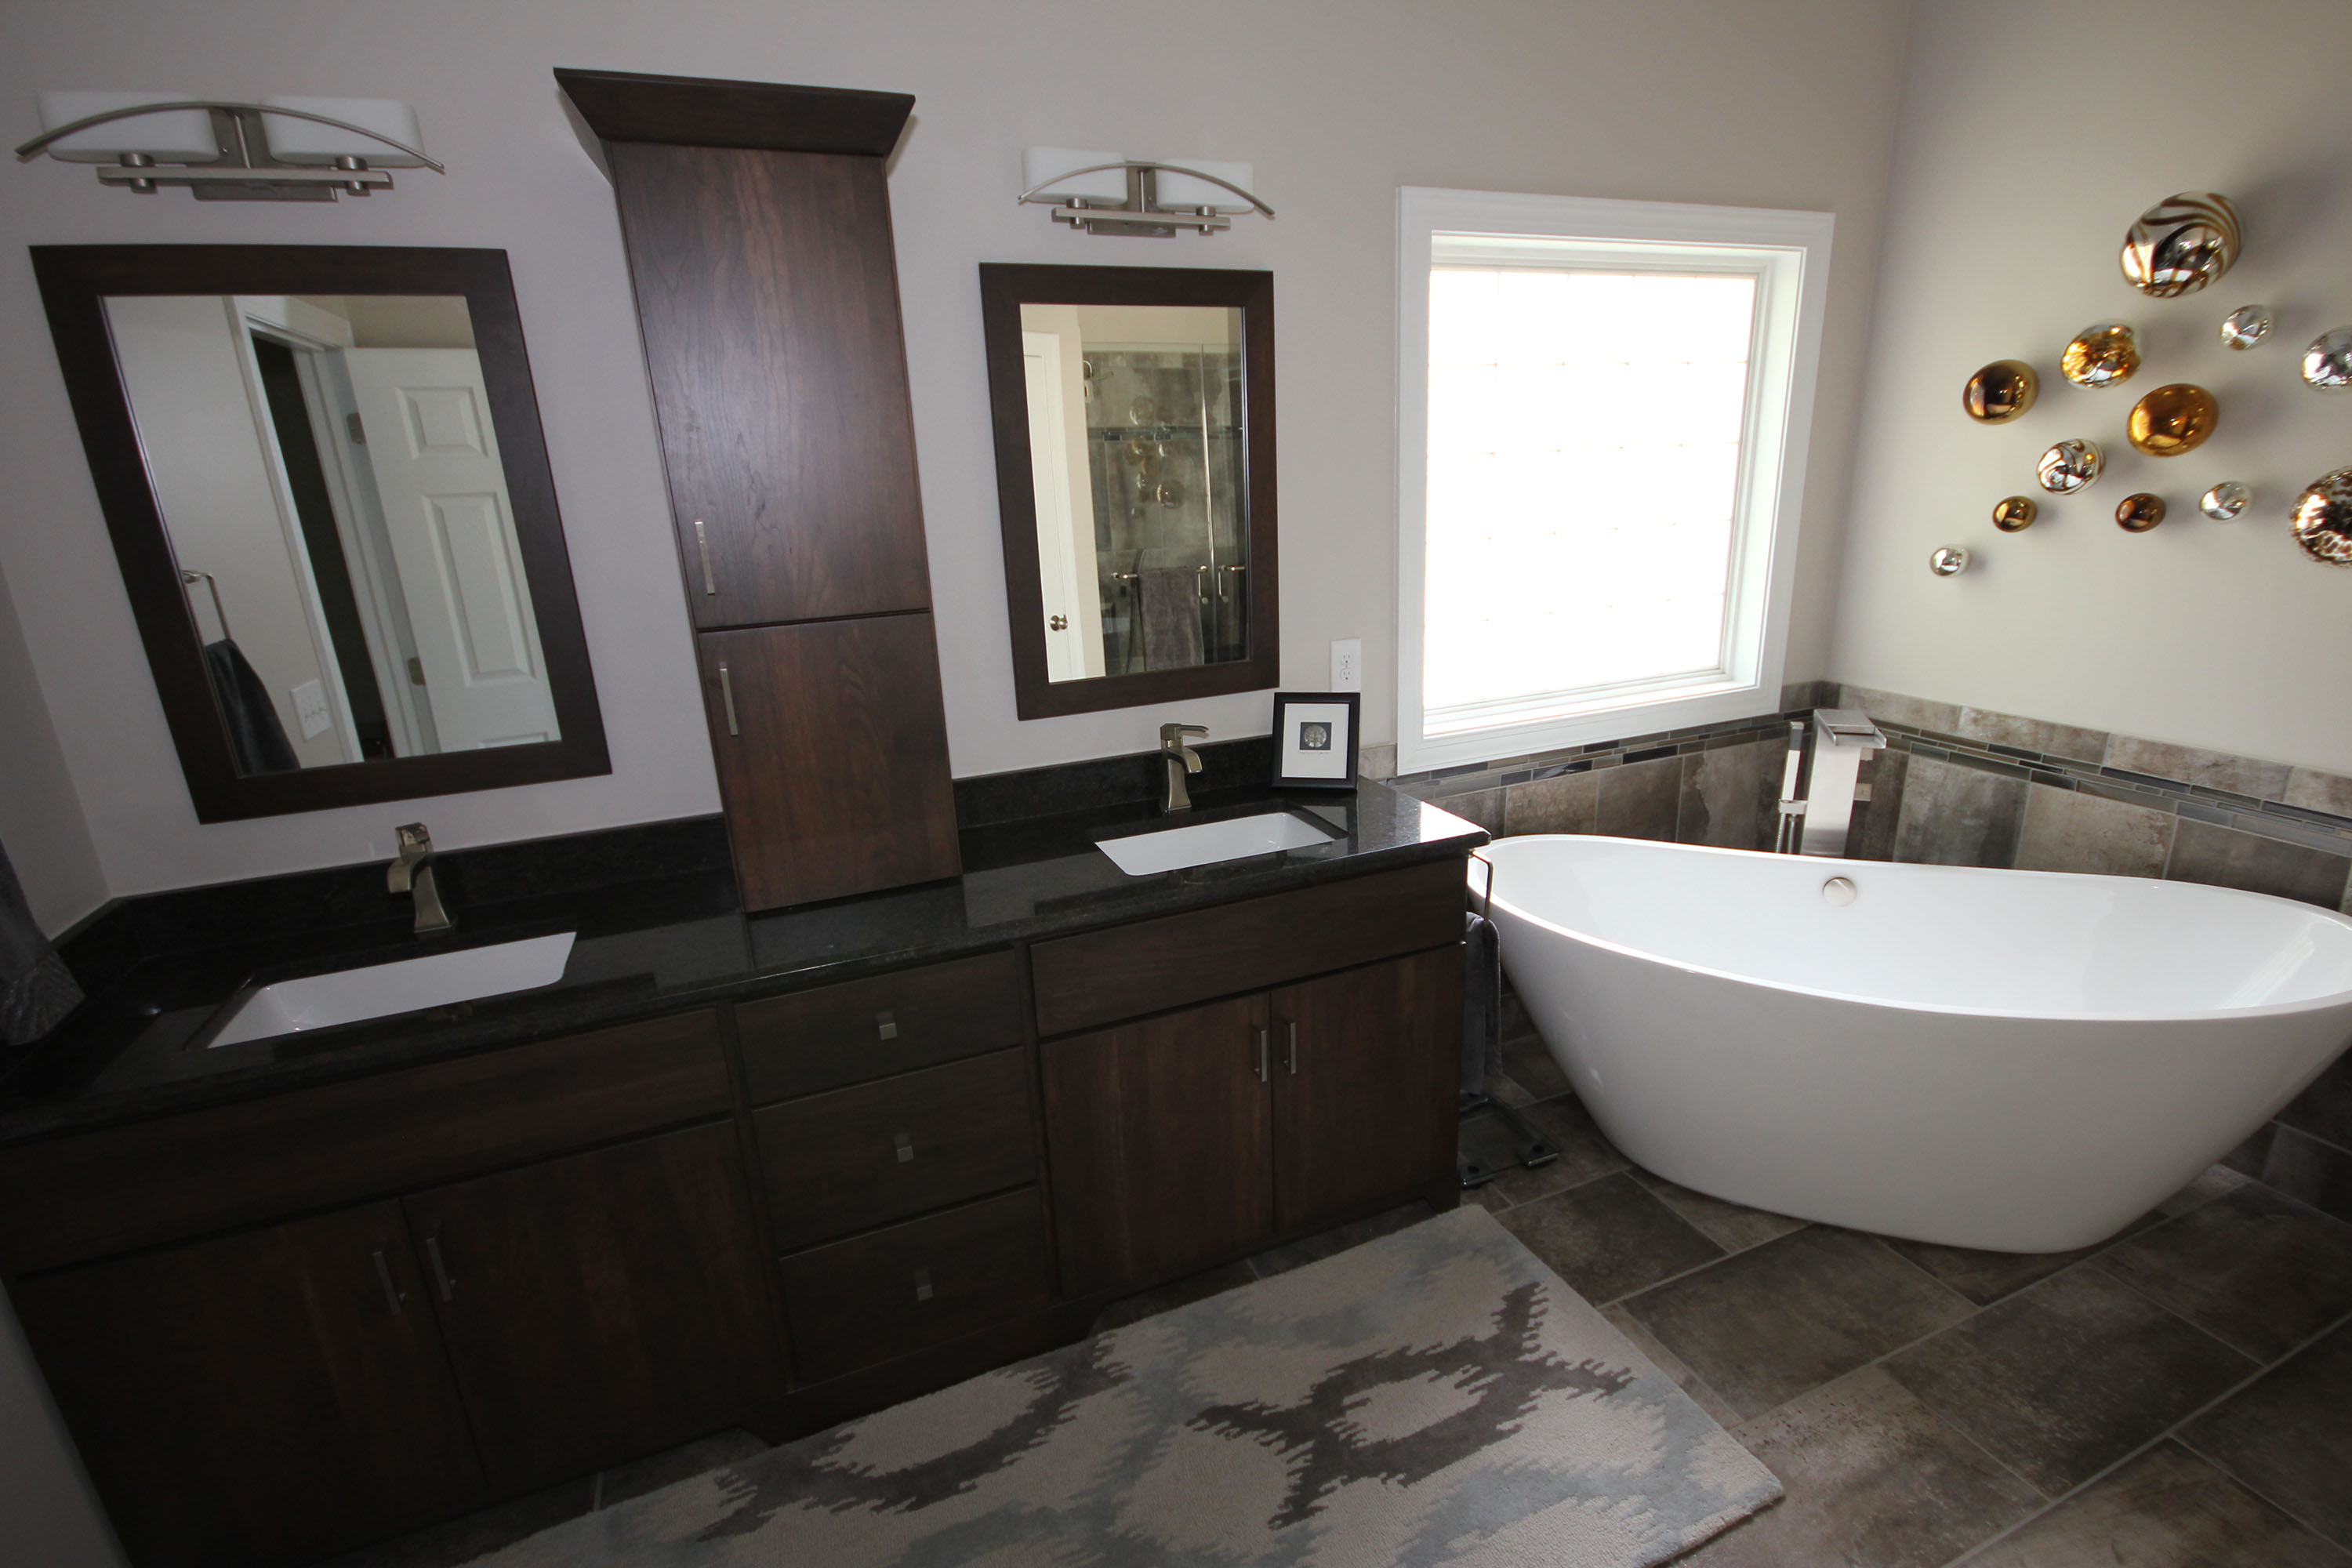 Genial Freestanding Tub. View Image. Bathroom Remodeling Cary. View Image